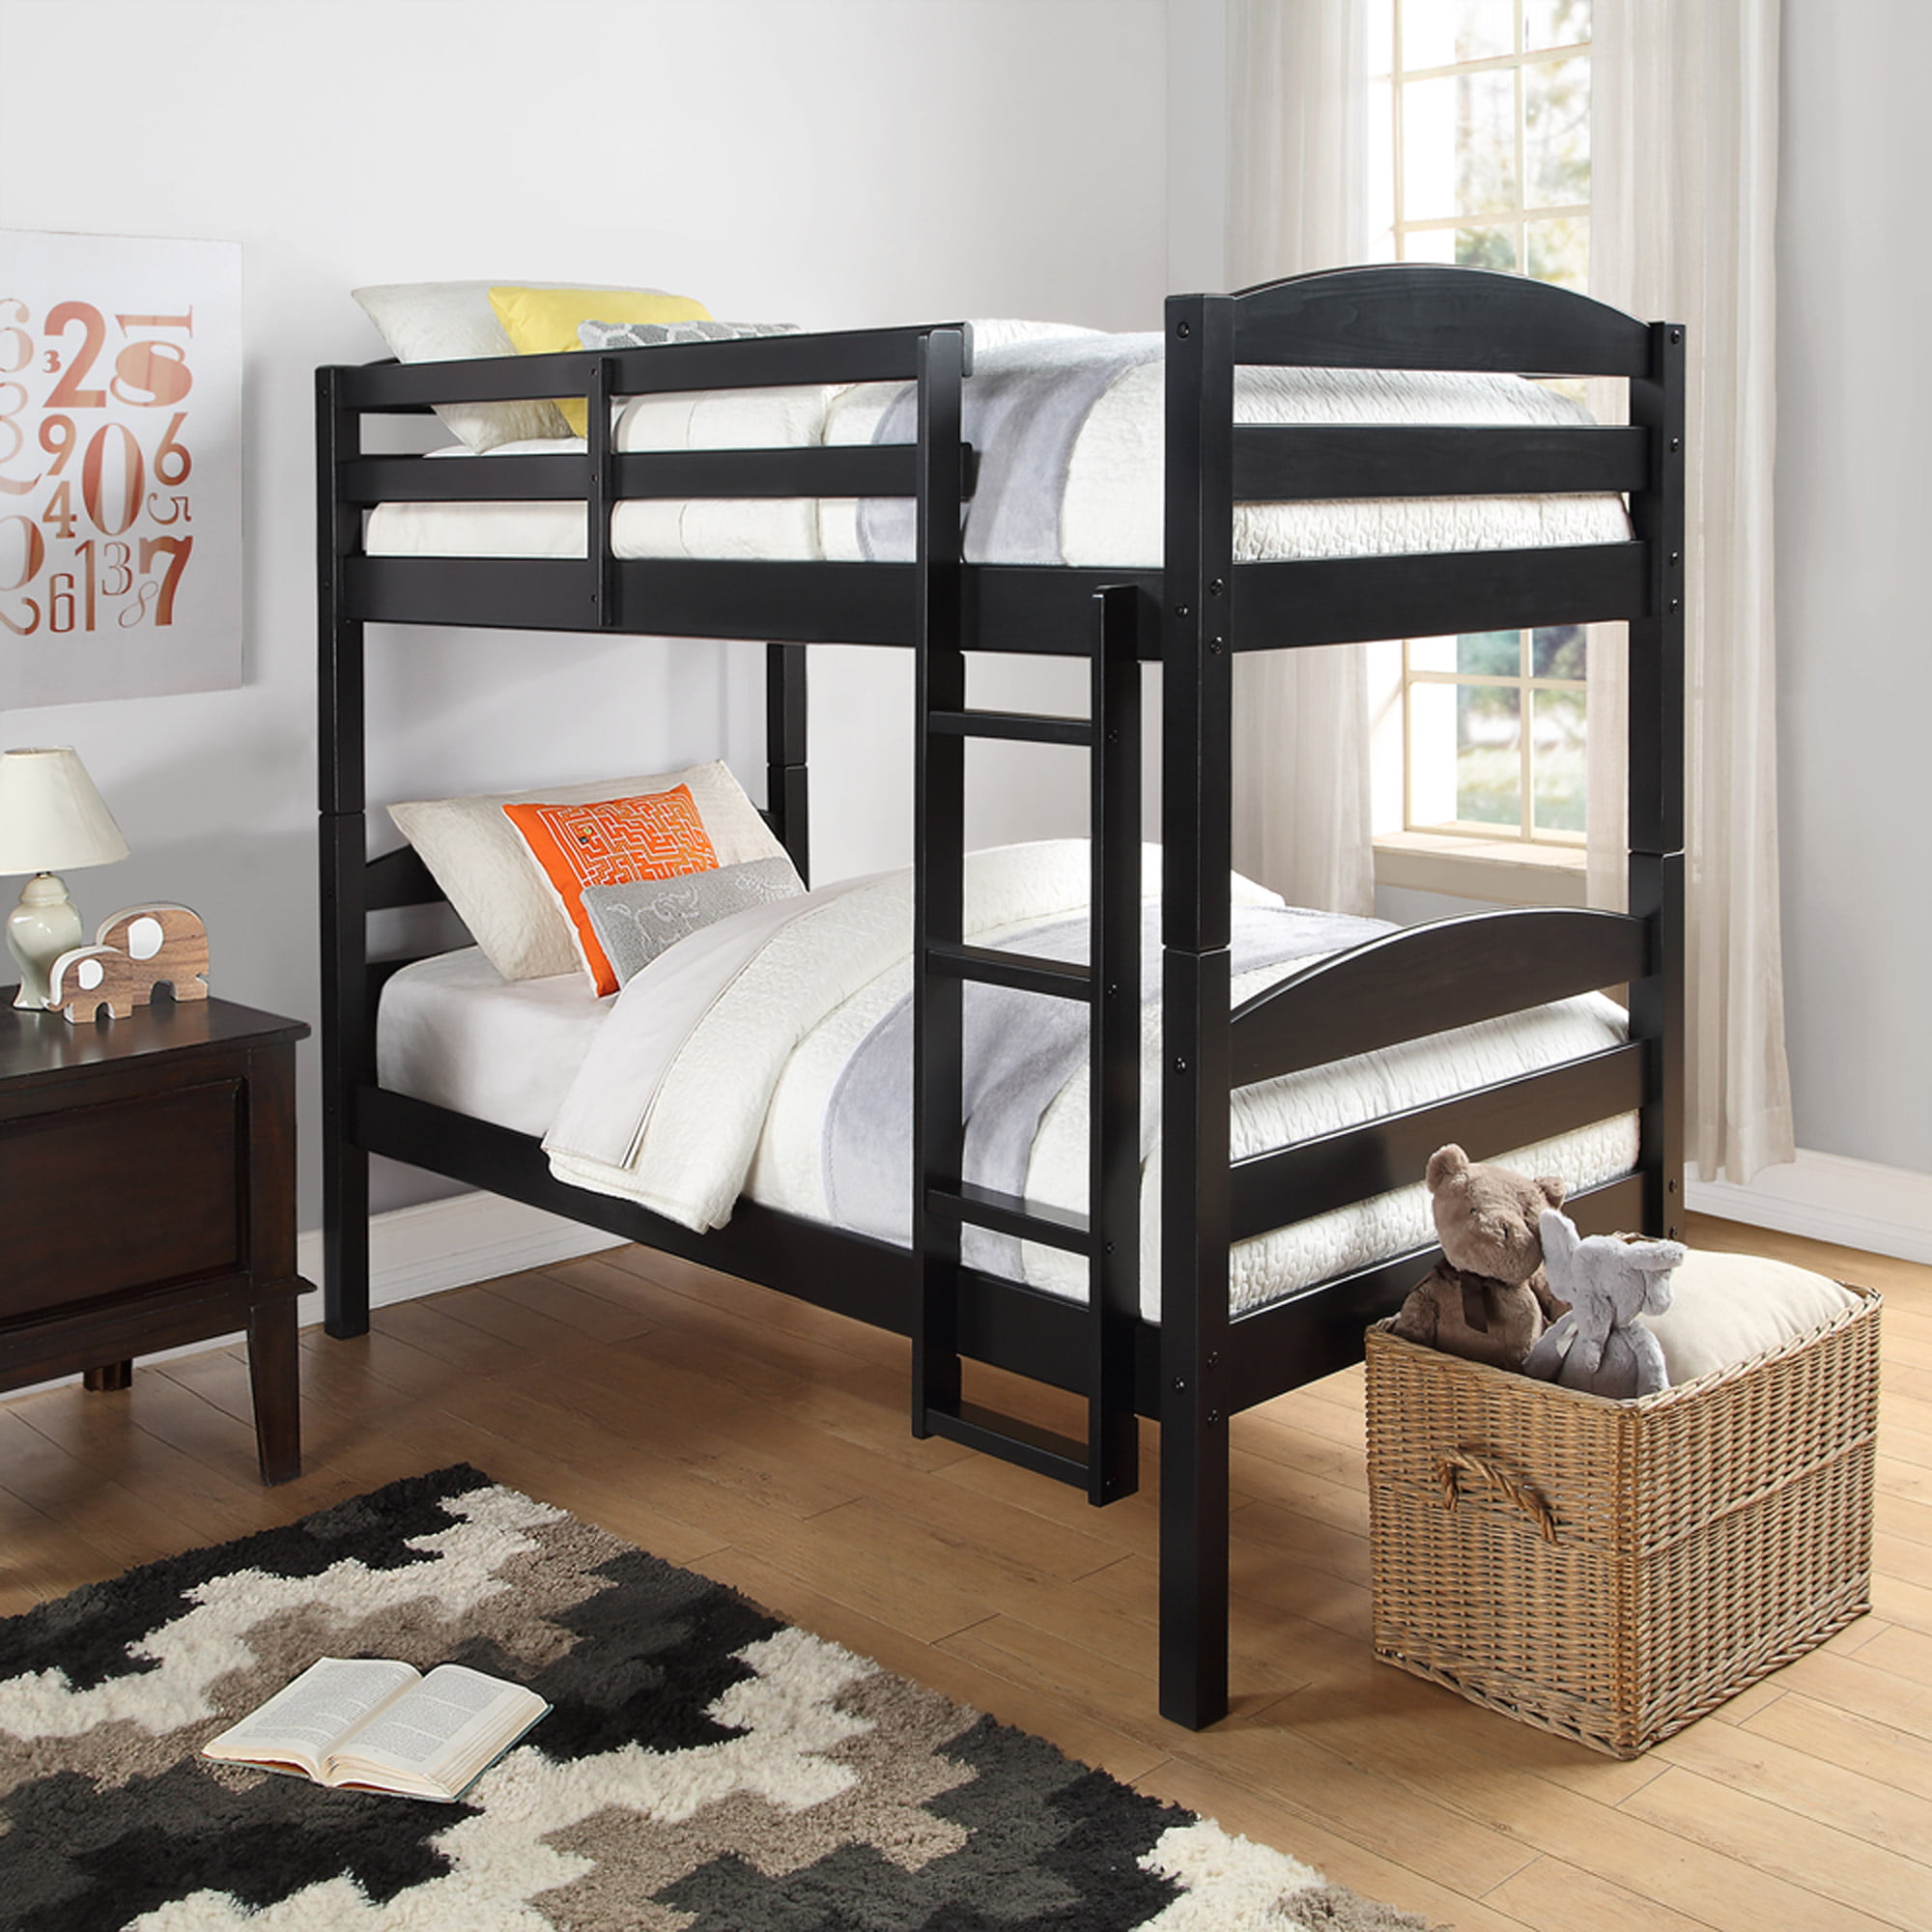 Twin Size Bunk Bed Convertible Wood Ladder Black Finish